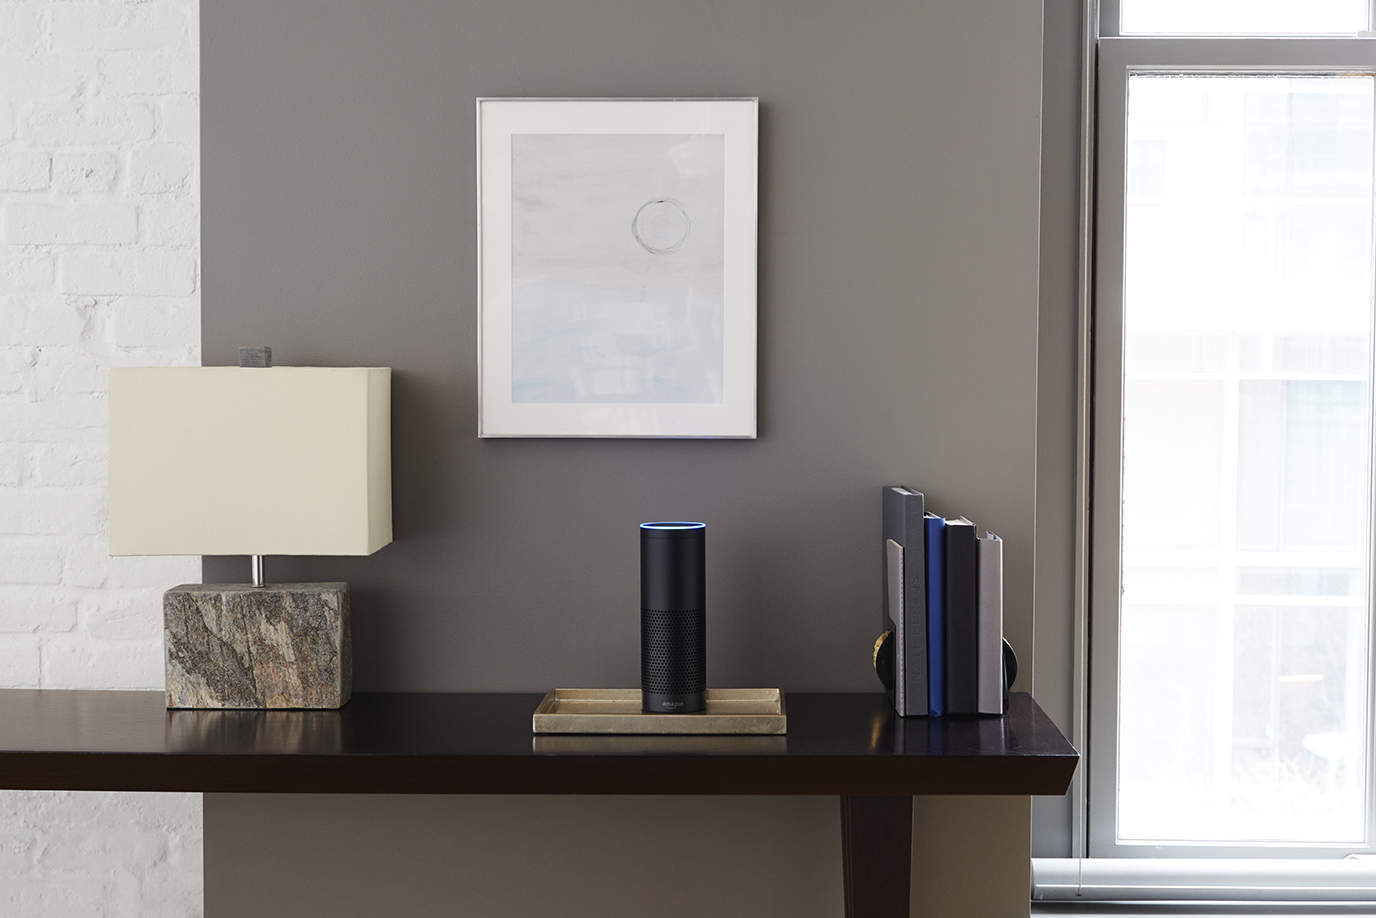 Consumers prefer to remain in the dark over connected home tech